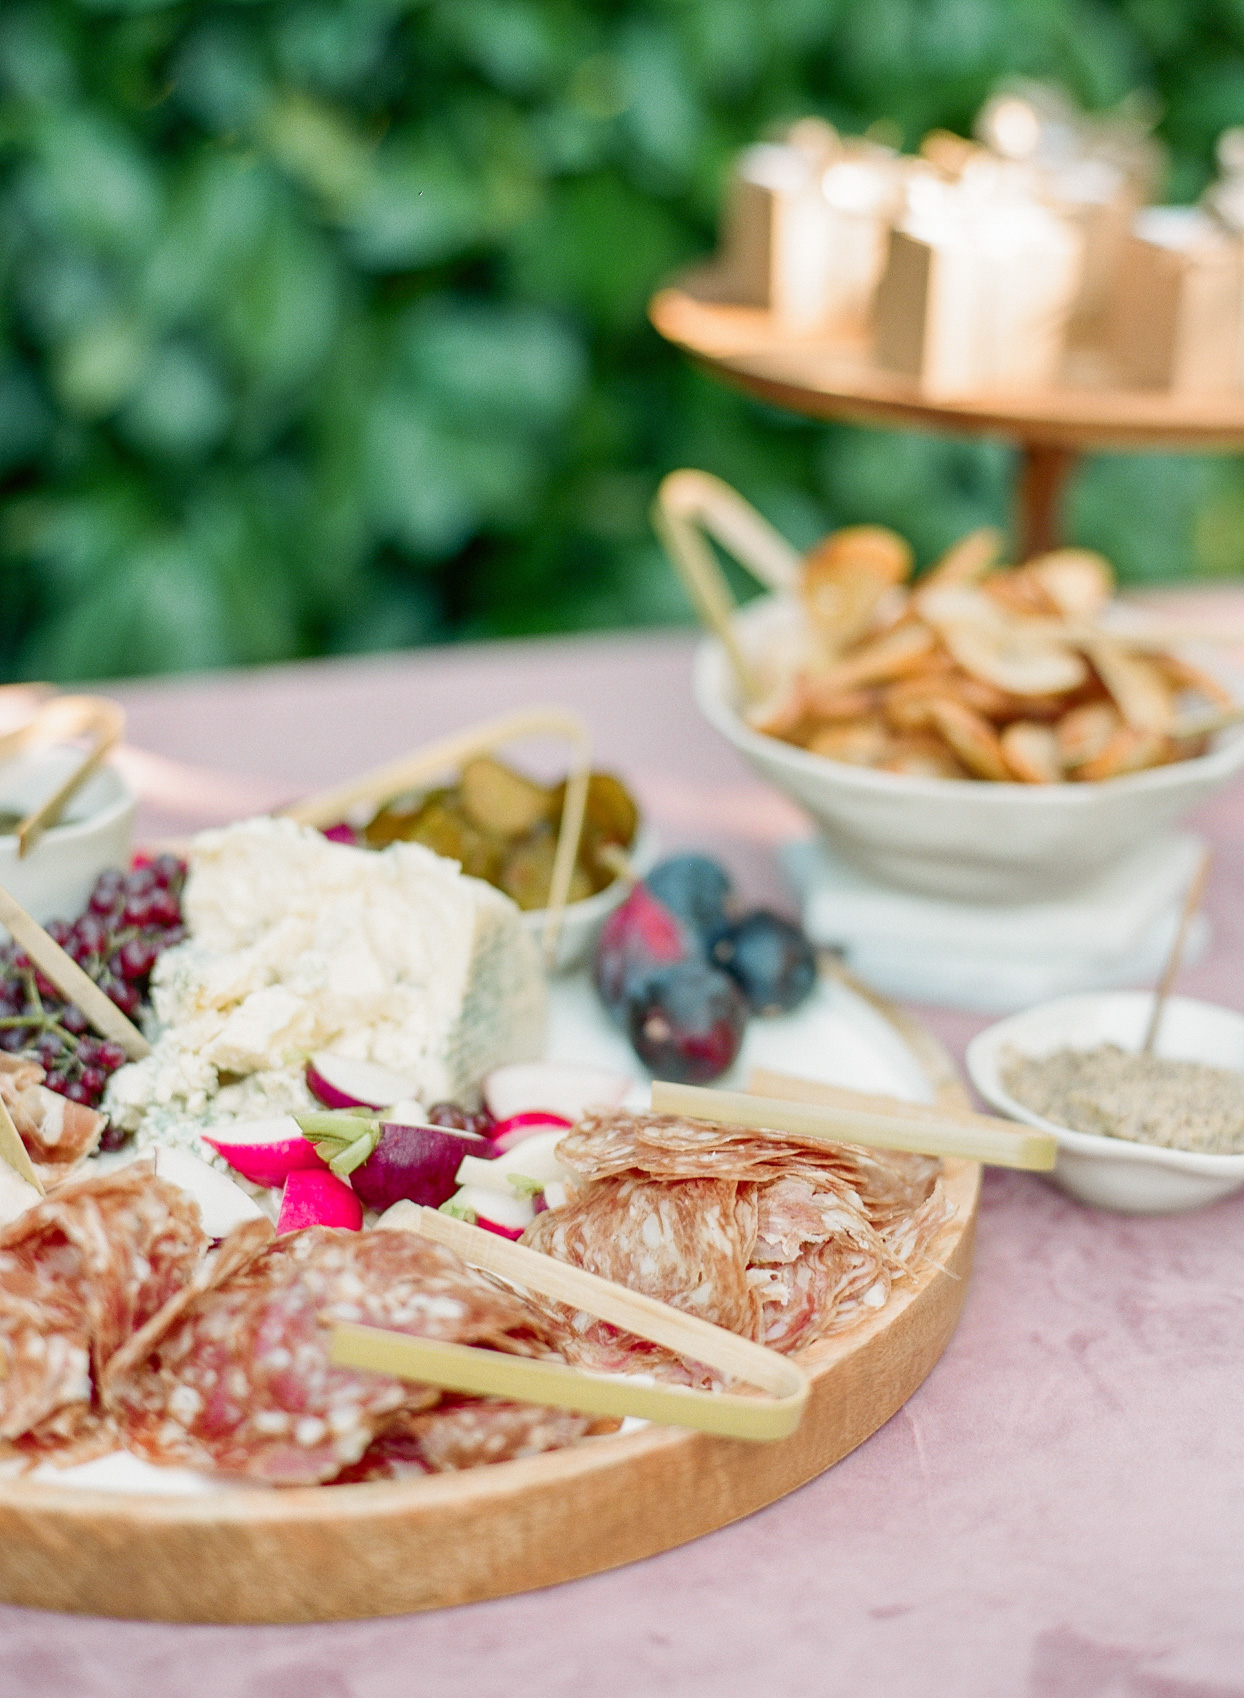 charcuterie board on burgundy tablecloth at wedding